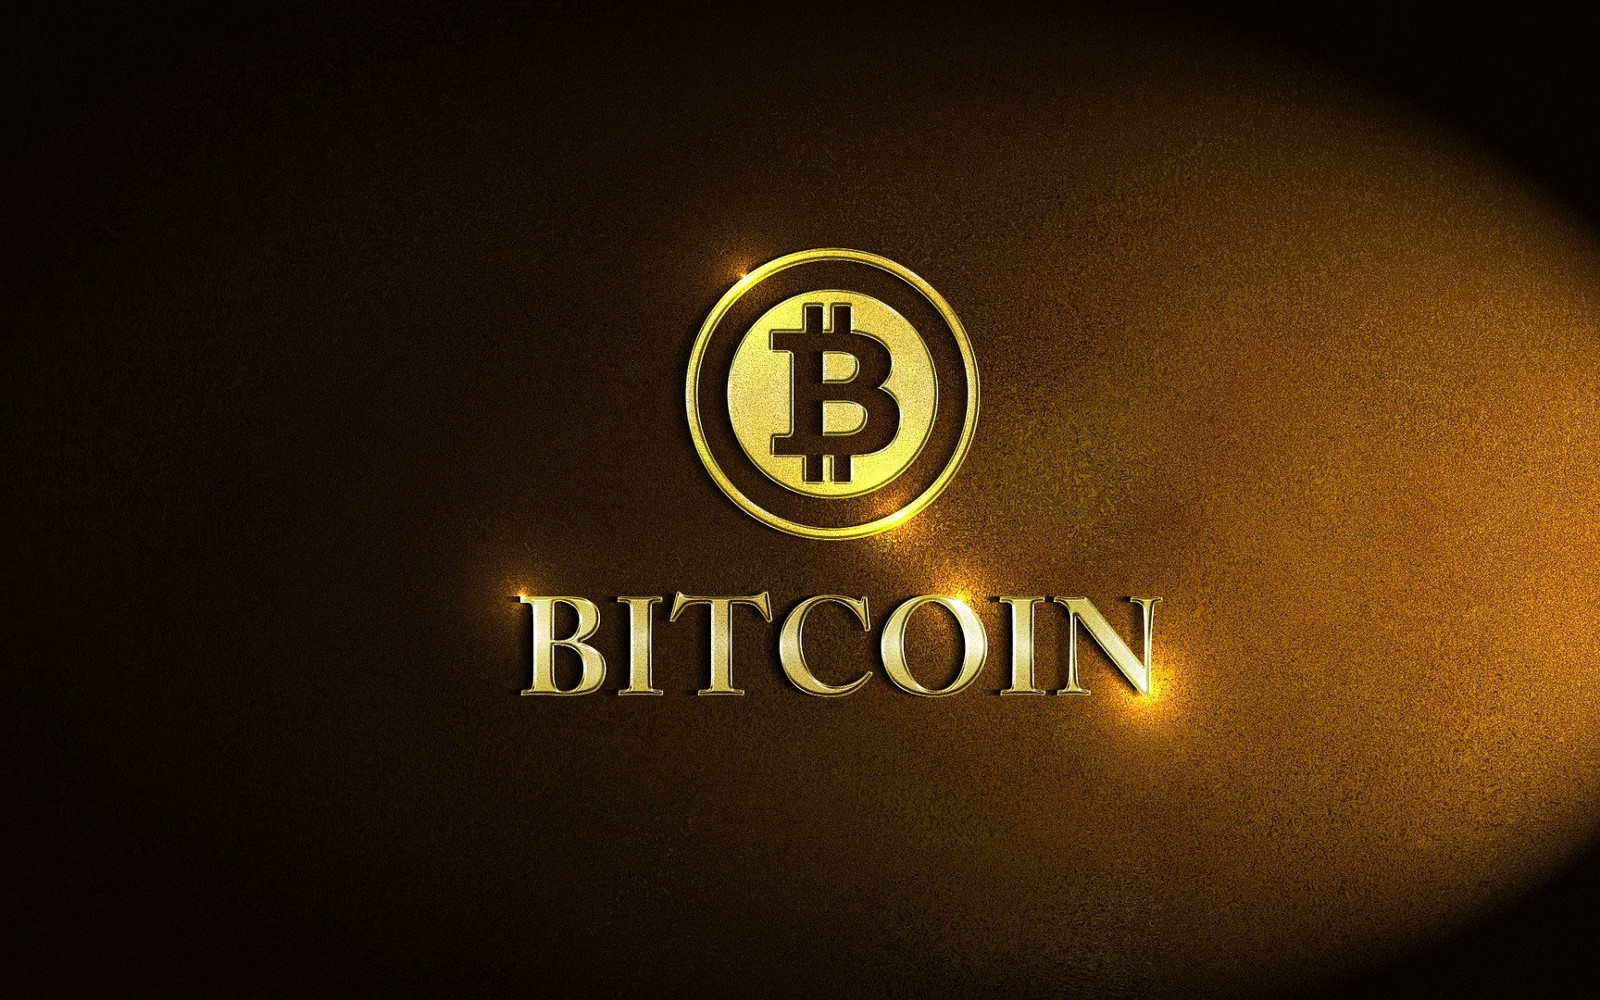 /bitcoin-the-new-gold-or-the-currency-of-the-future-48ec80496256 feature image